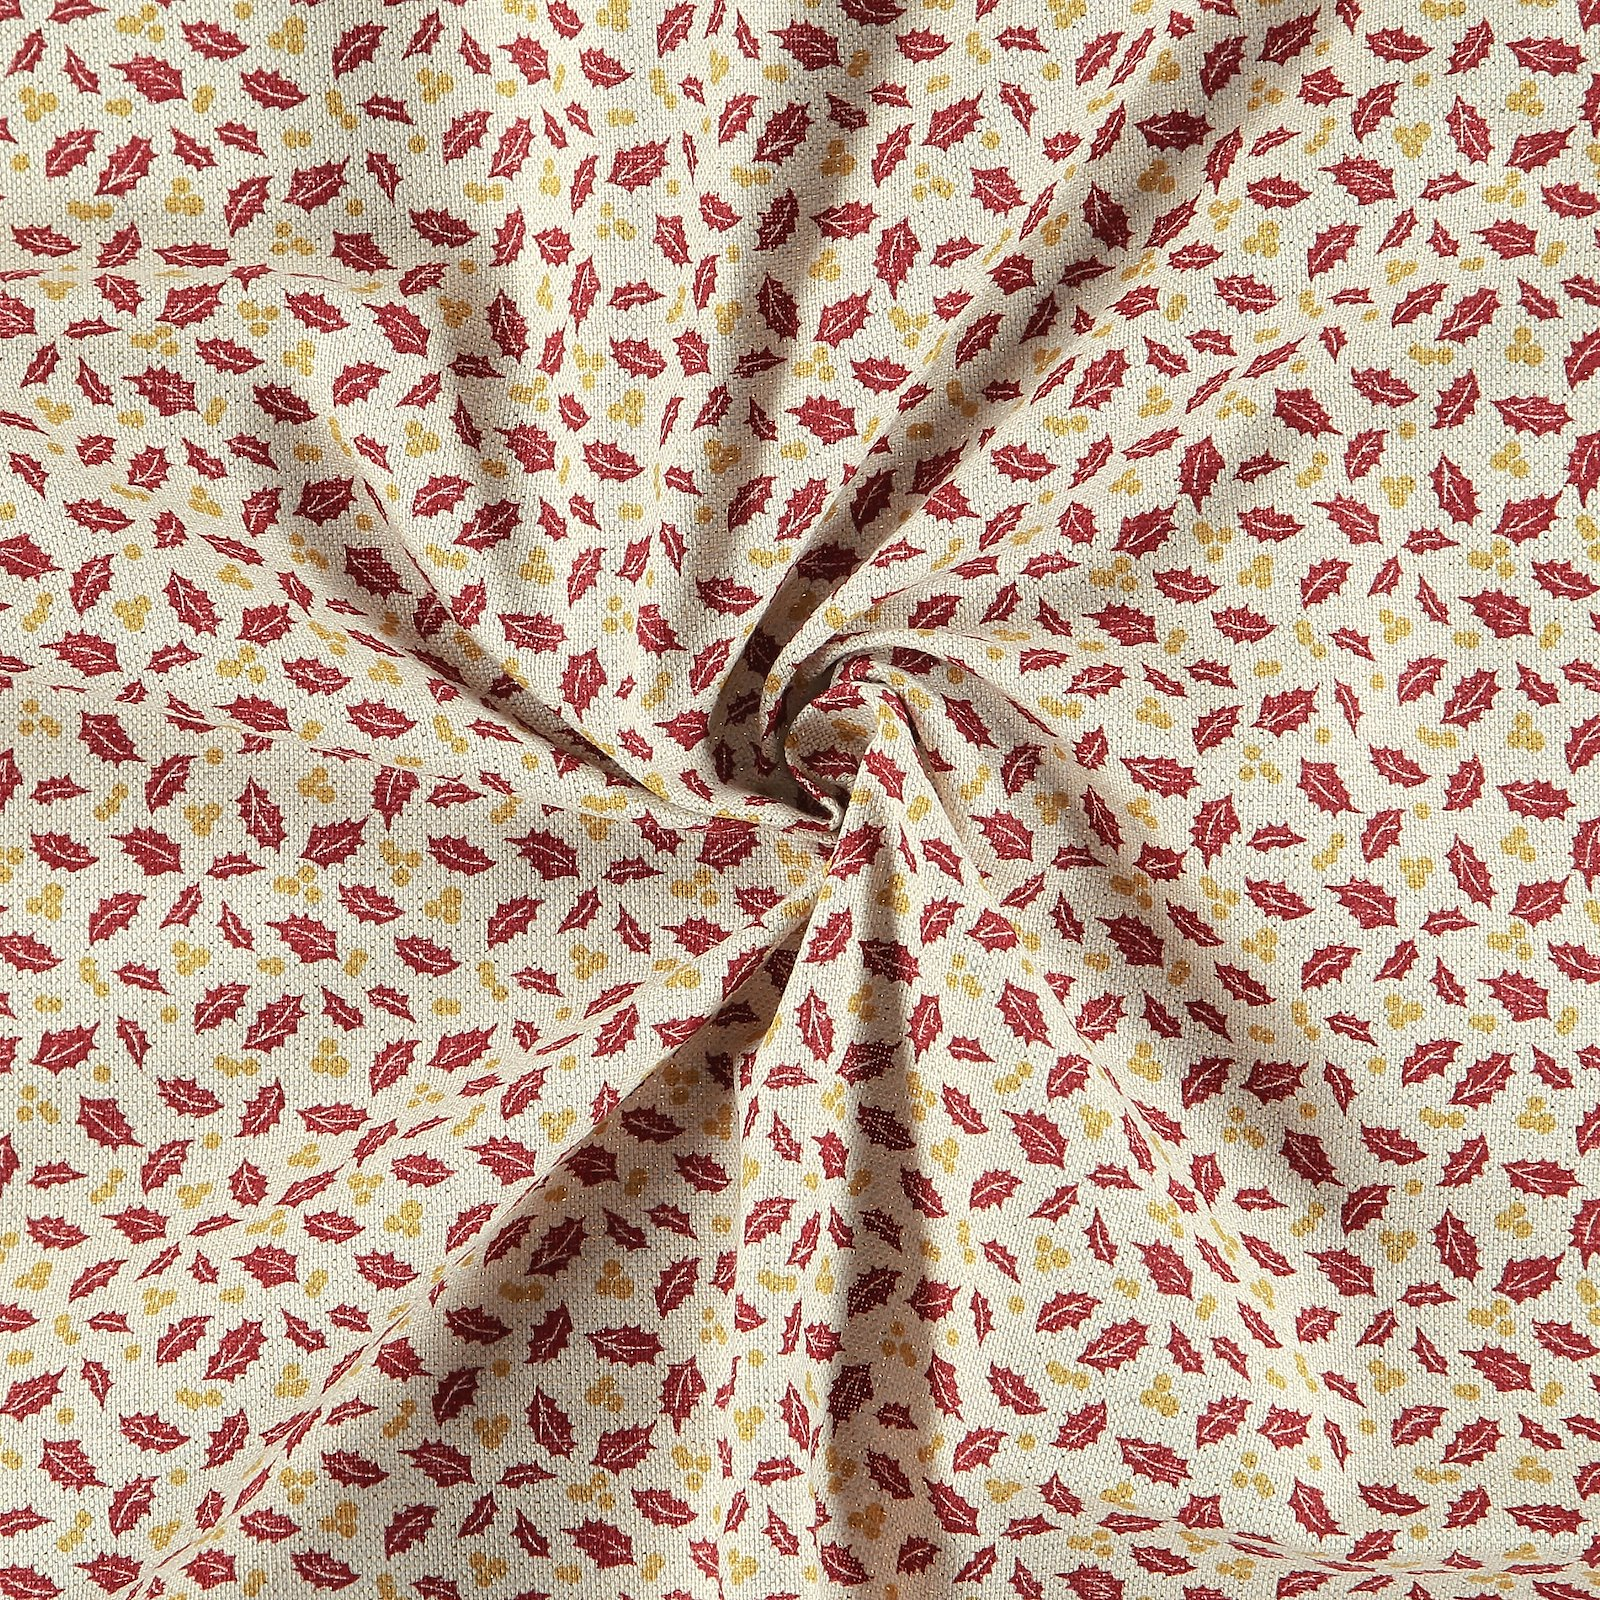 Woven nature w gold lurex /red holly 895947_pack